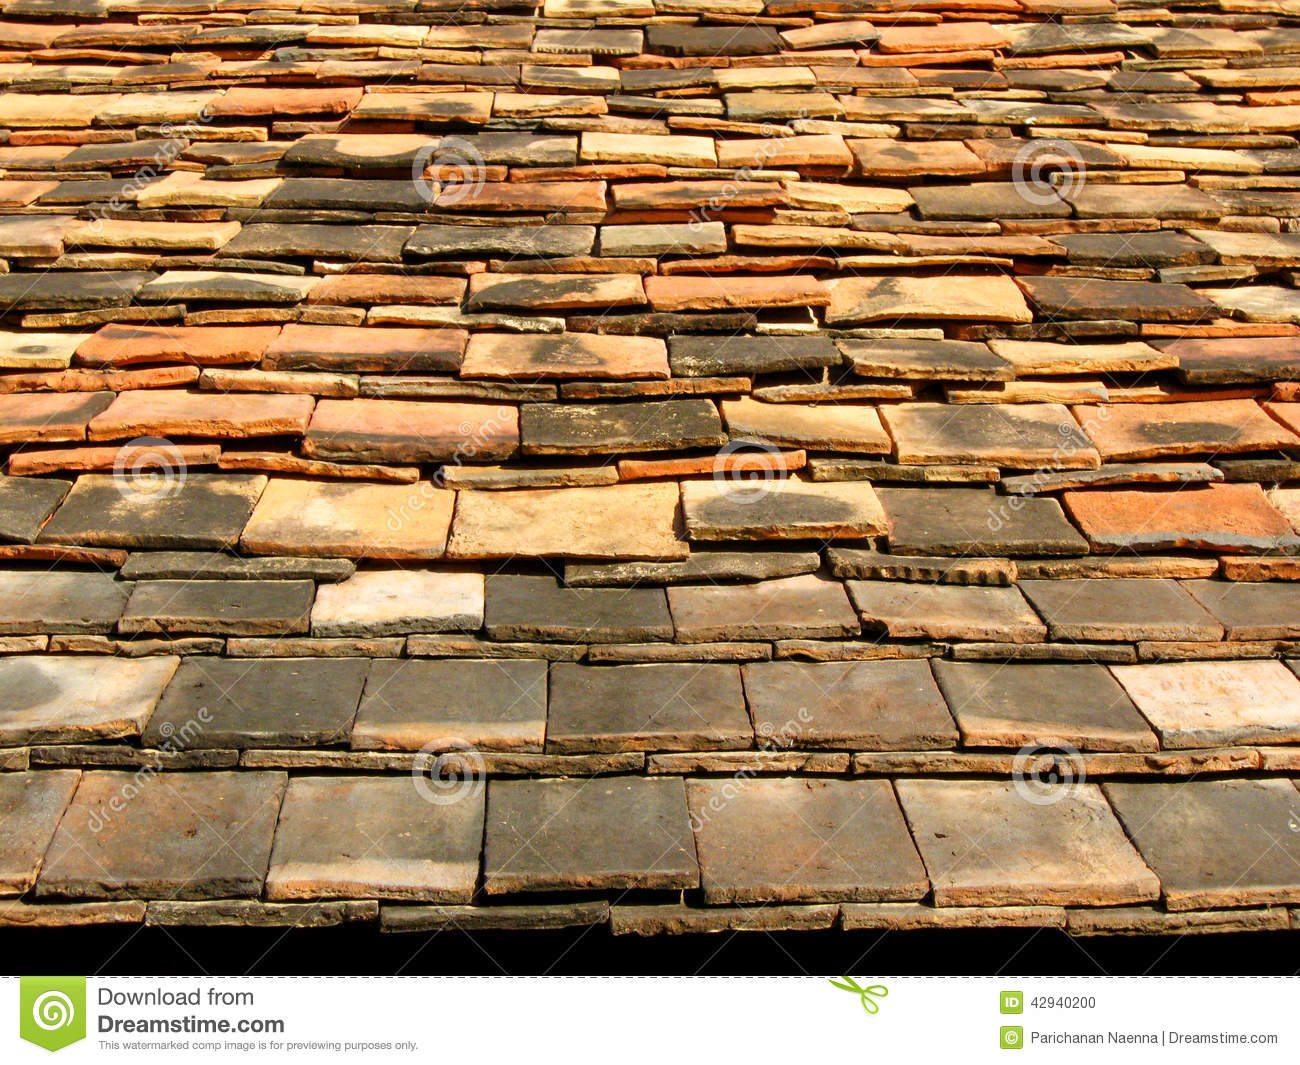 Ceramic tile roof stock photo image 42940200 - Houses with ceramic tile roofing ...